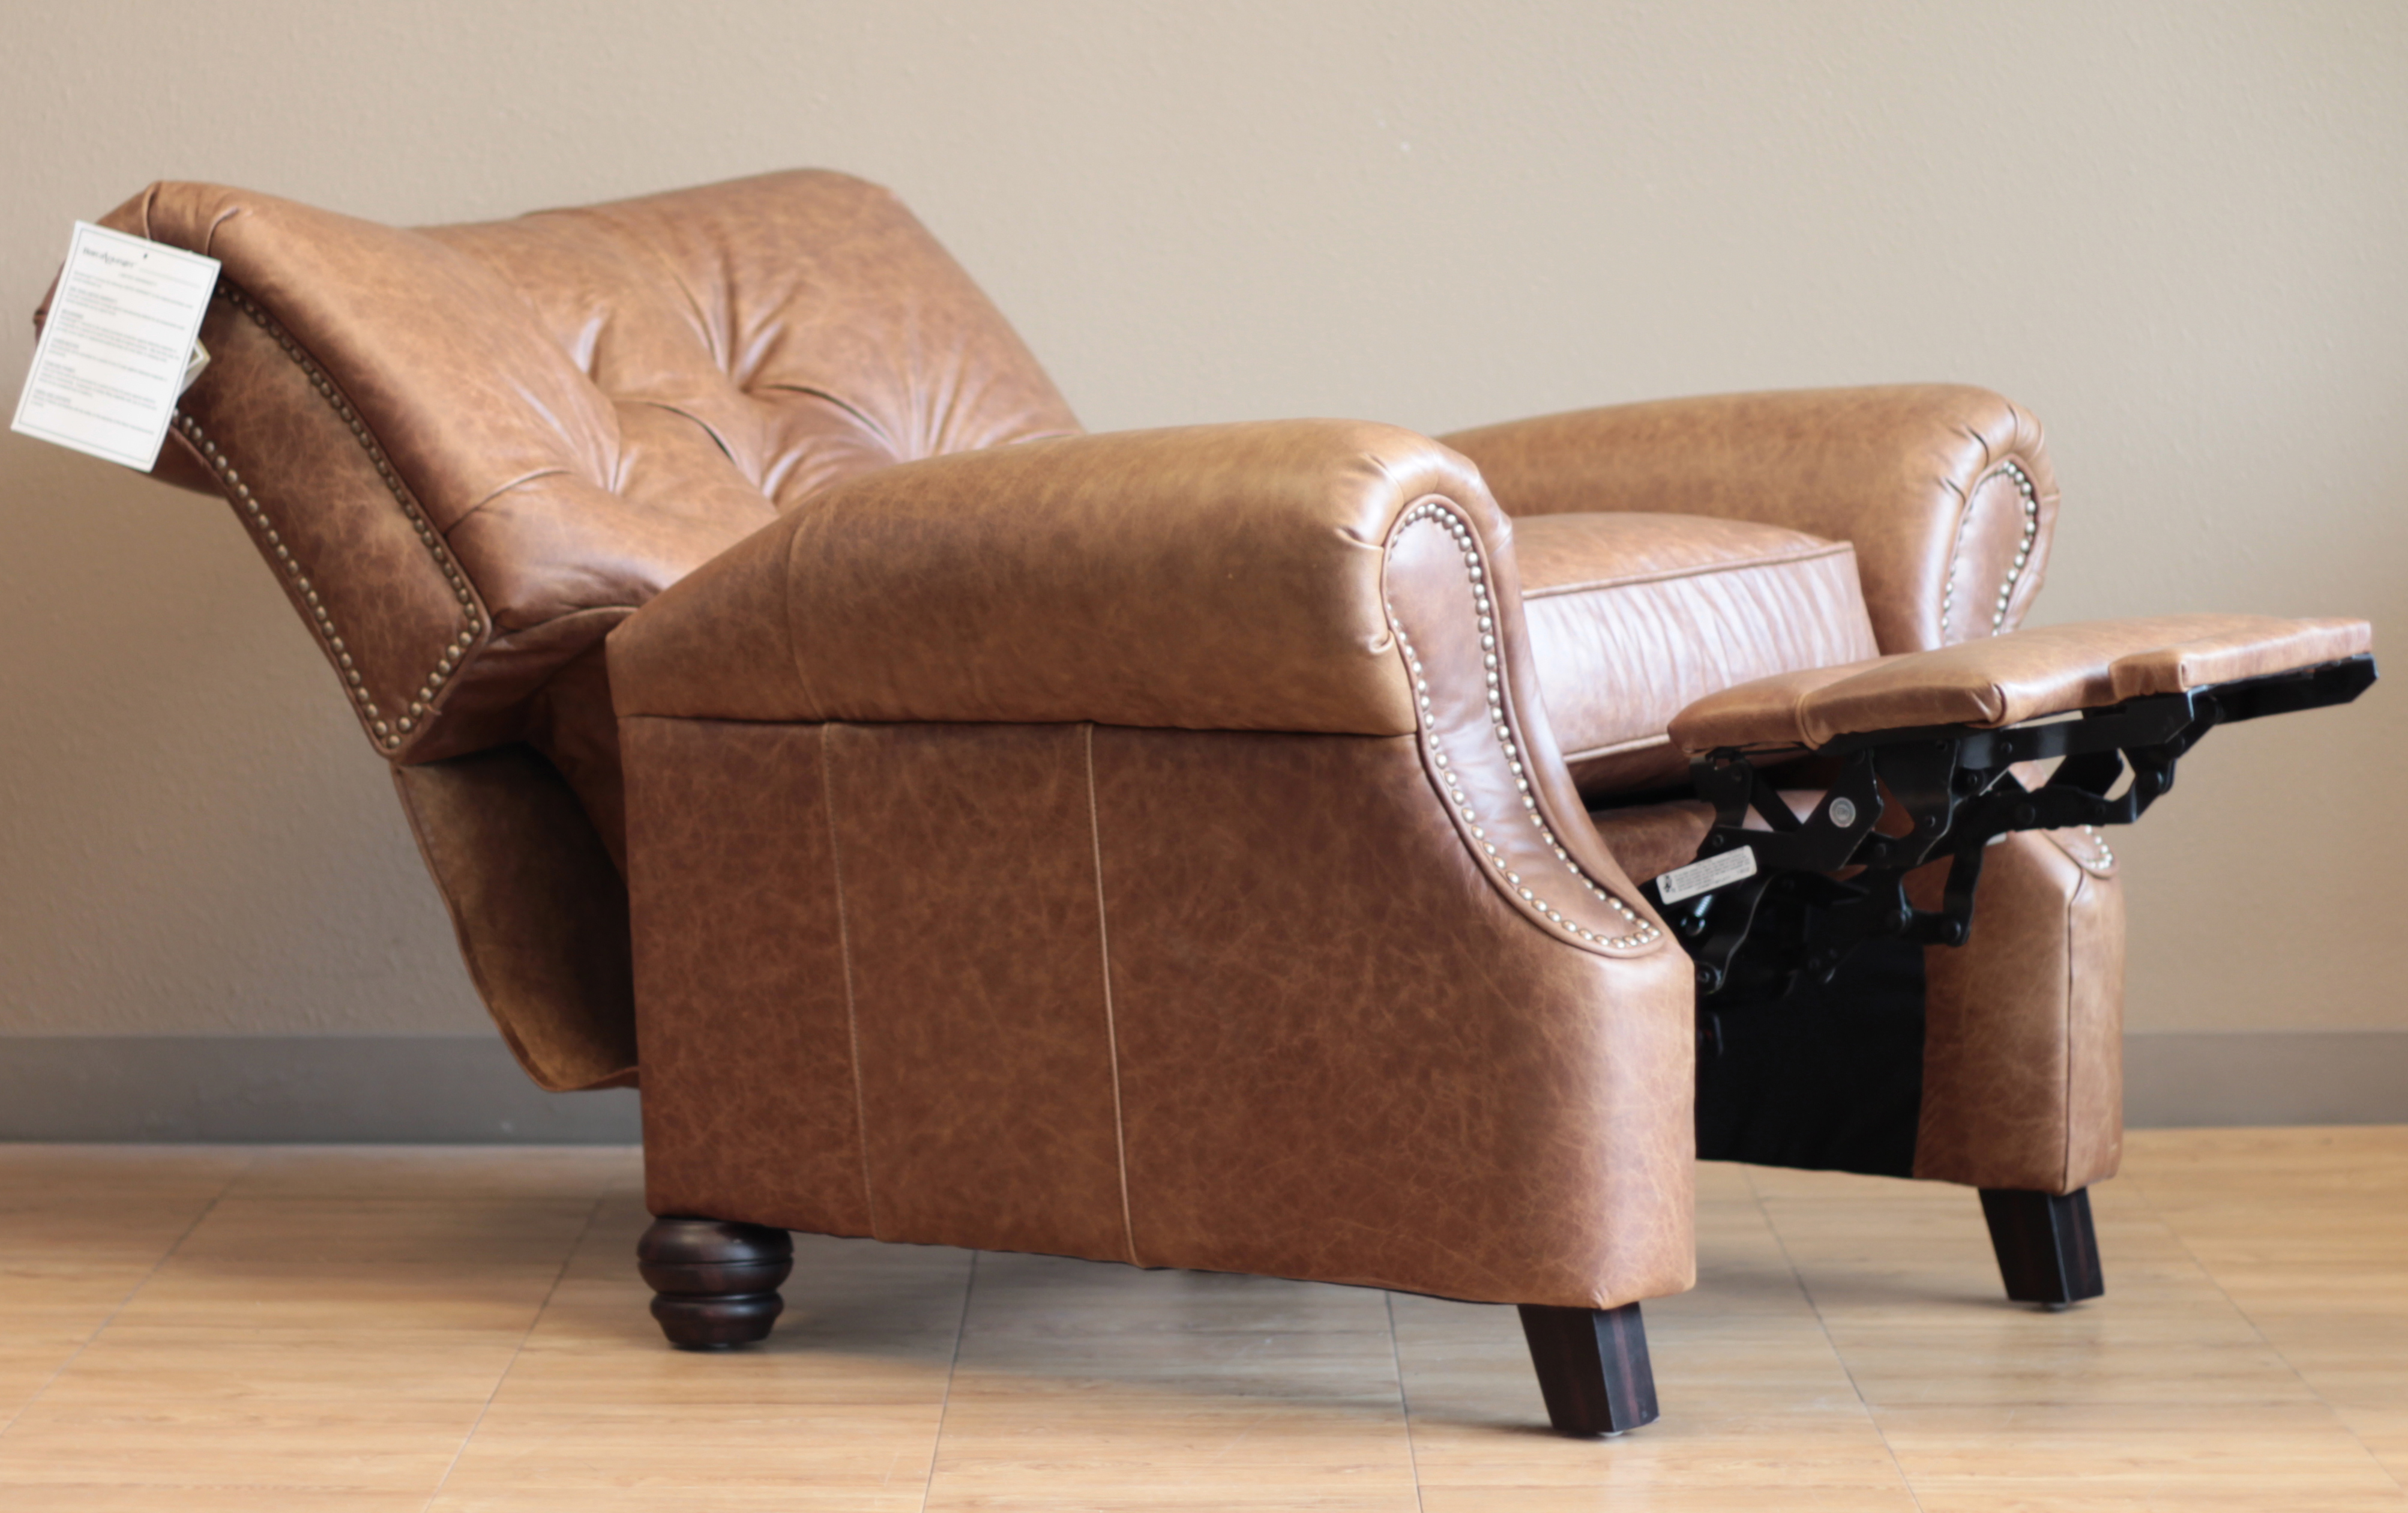 Leather Recliner Chairs Barcalounger Phoenix Ii Recliner Chair Leather Recliner